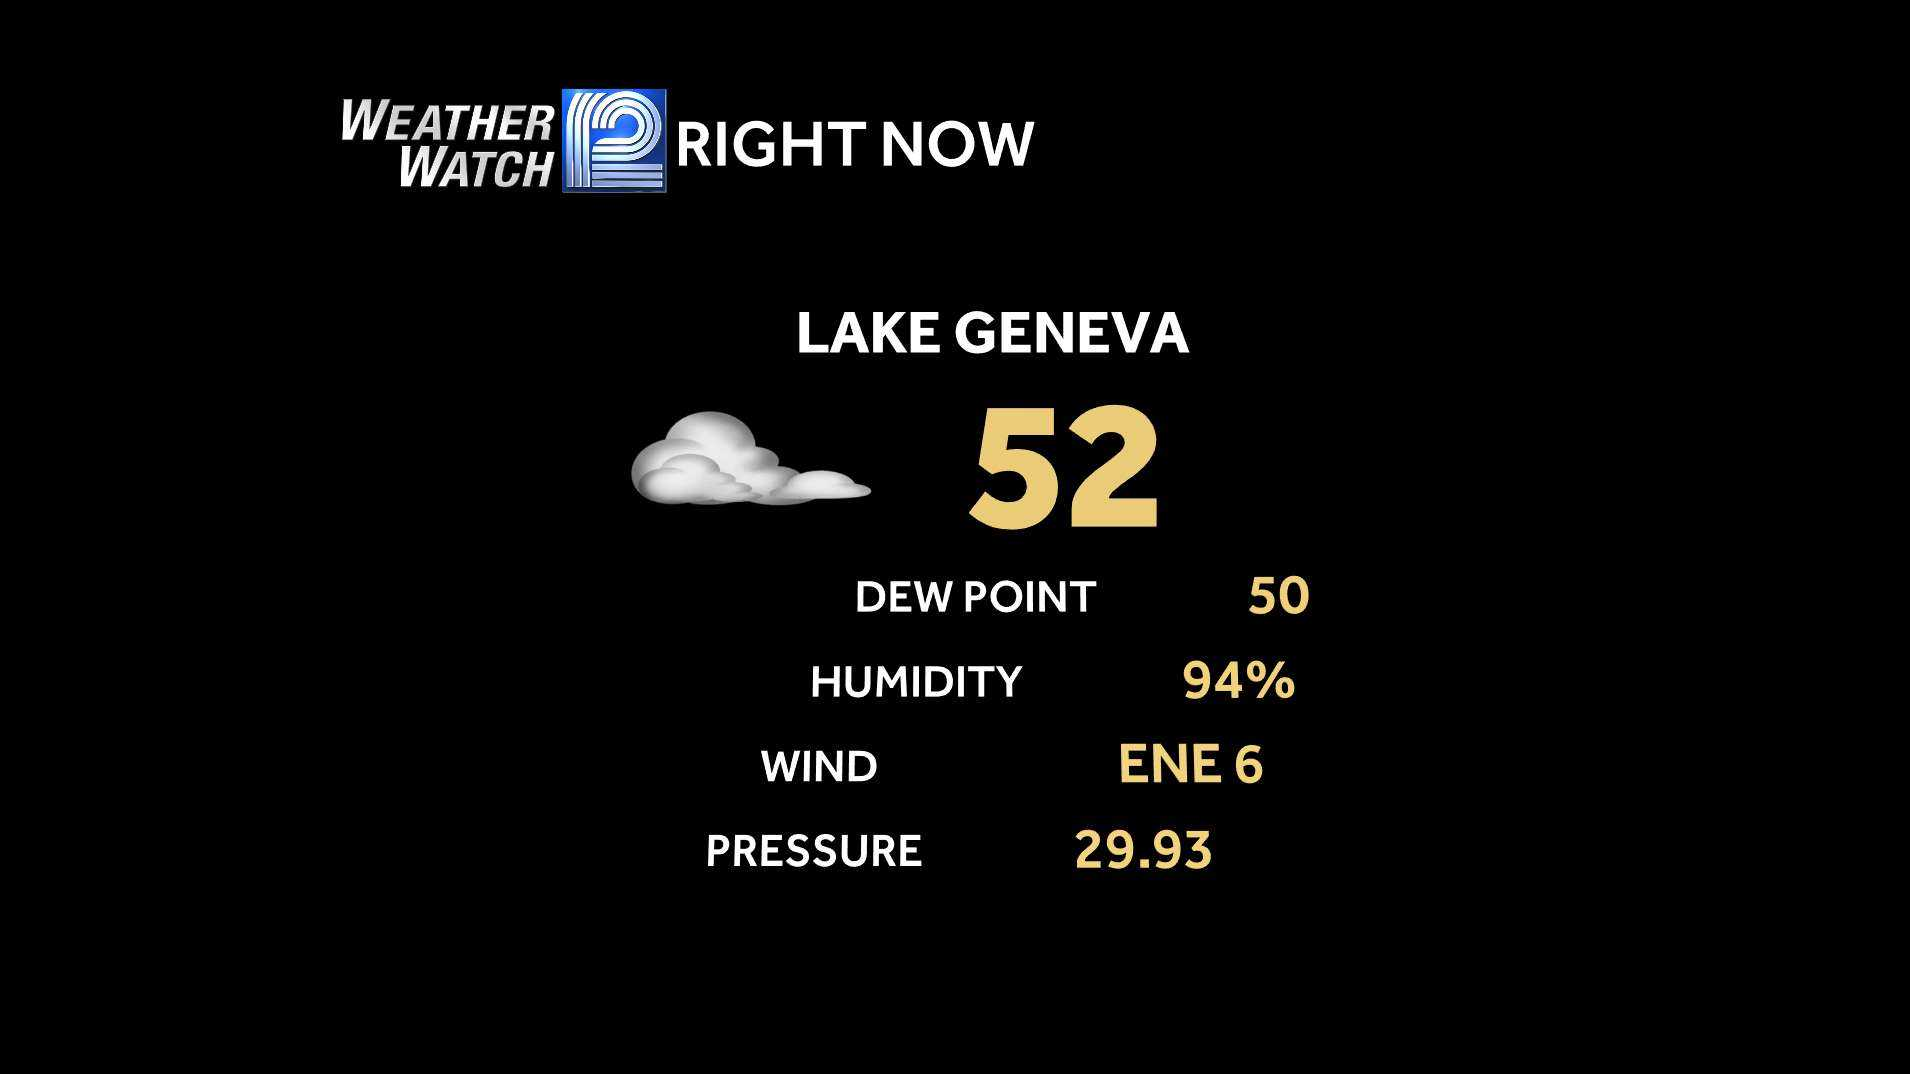 Lake Geneva temperature